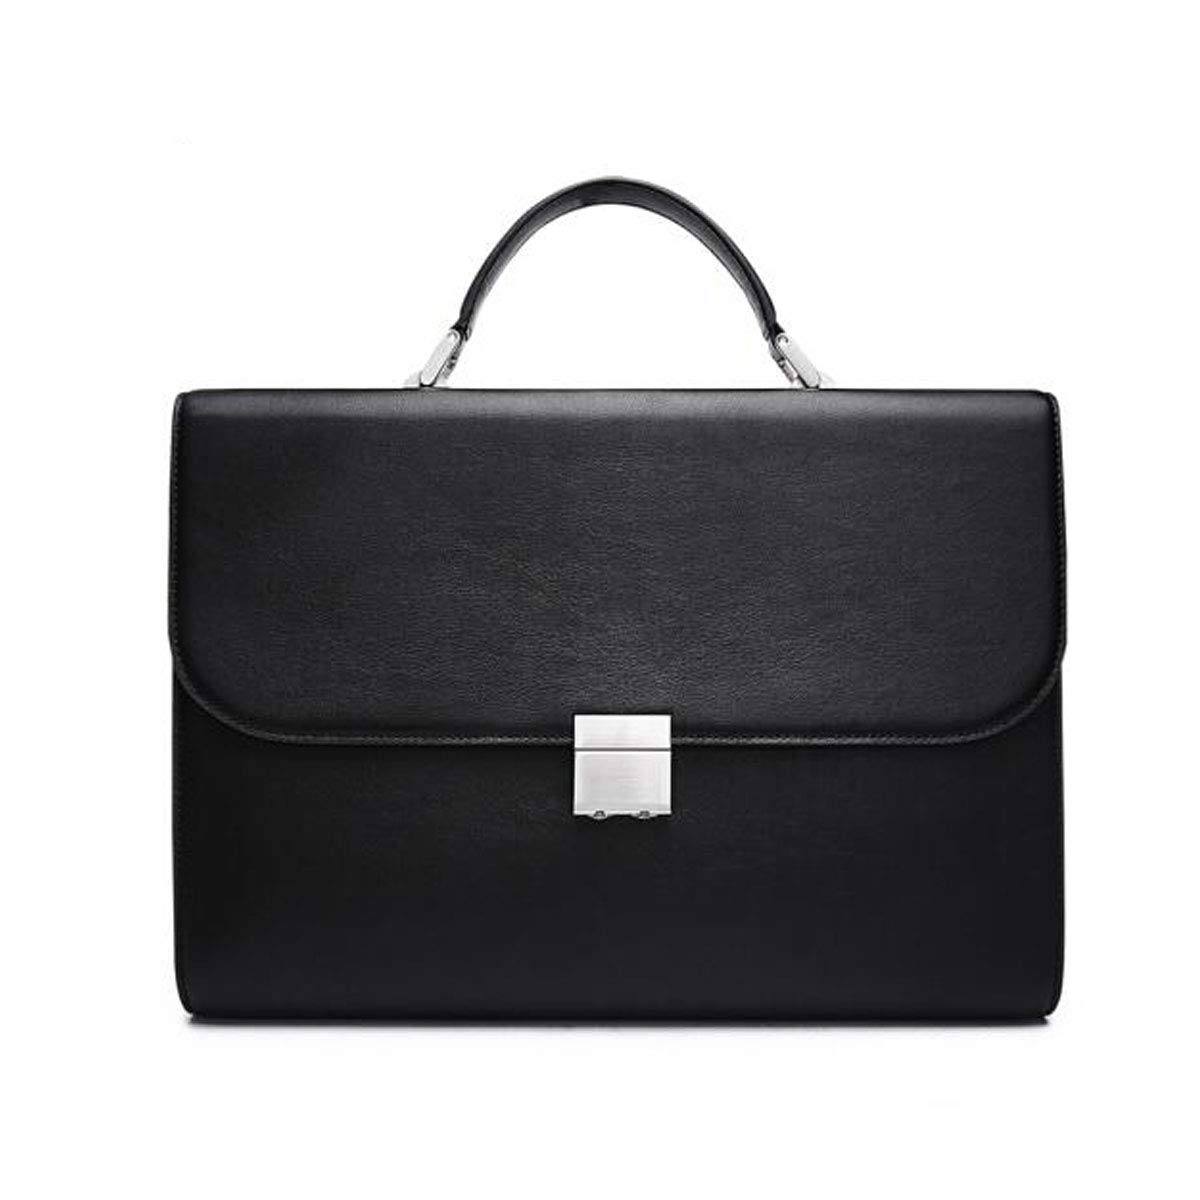 Briefcase Lawyer Computer Bag Black Size: 37627cm New Leather Mens Handbag With Anti-theft Password Lock